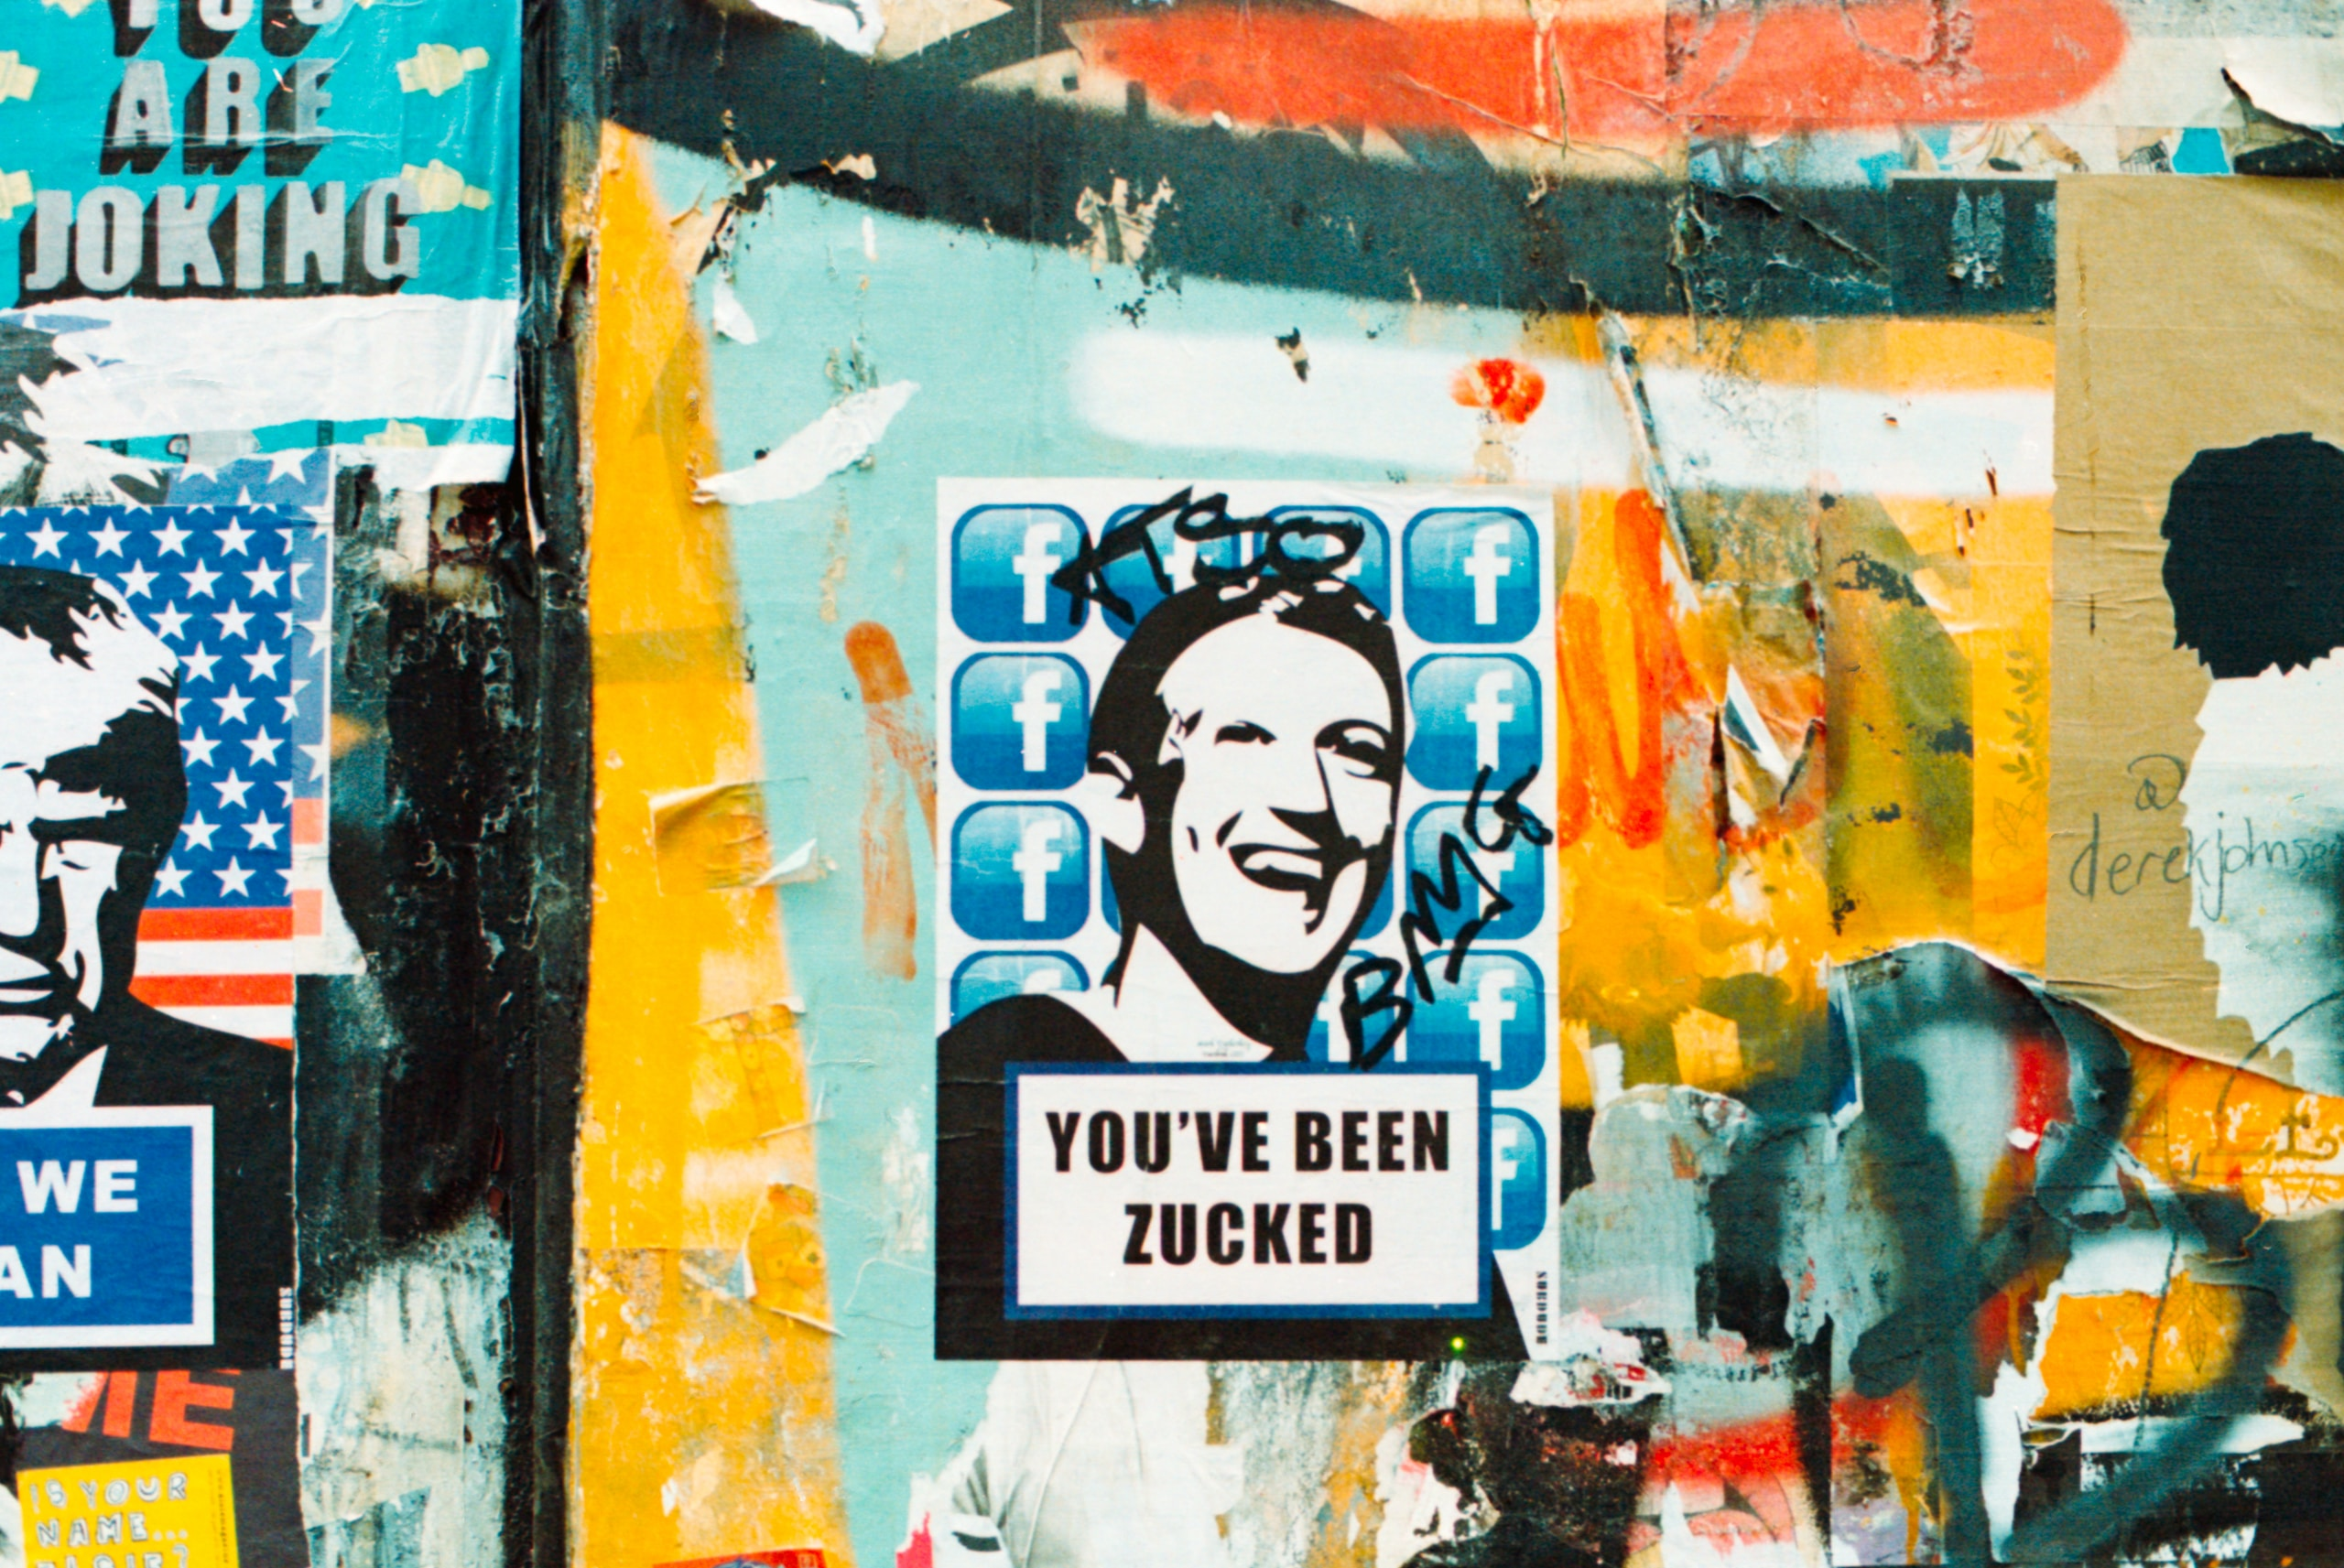 You've been zucked.London Street art Shoreditch.Shot on film, Kodak Portra 800, Nikon FM2n